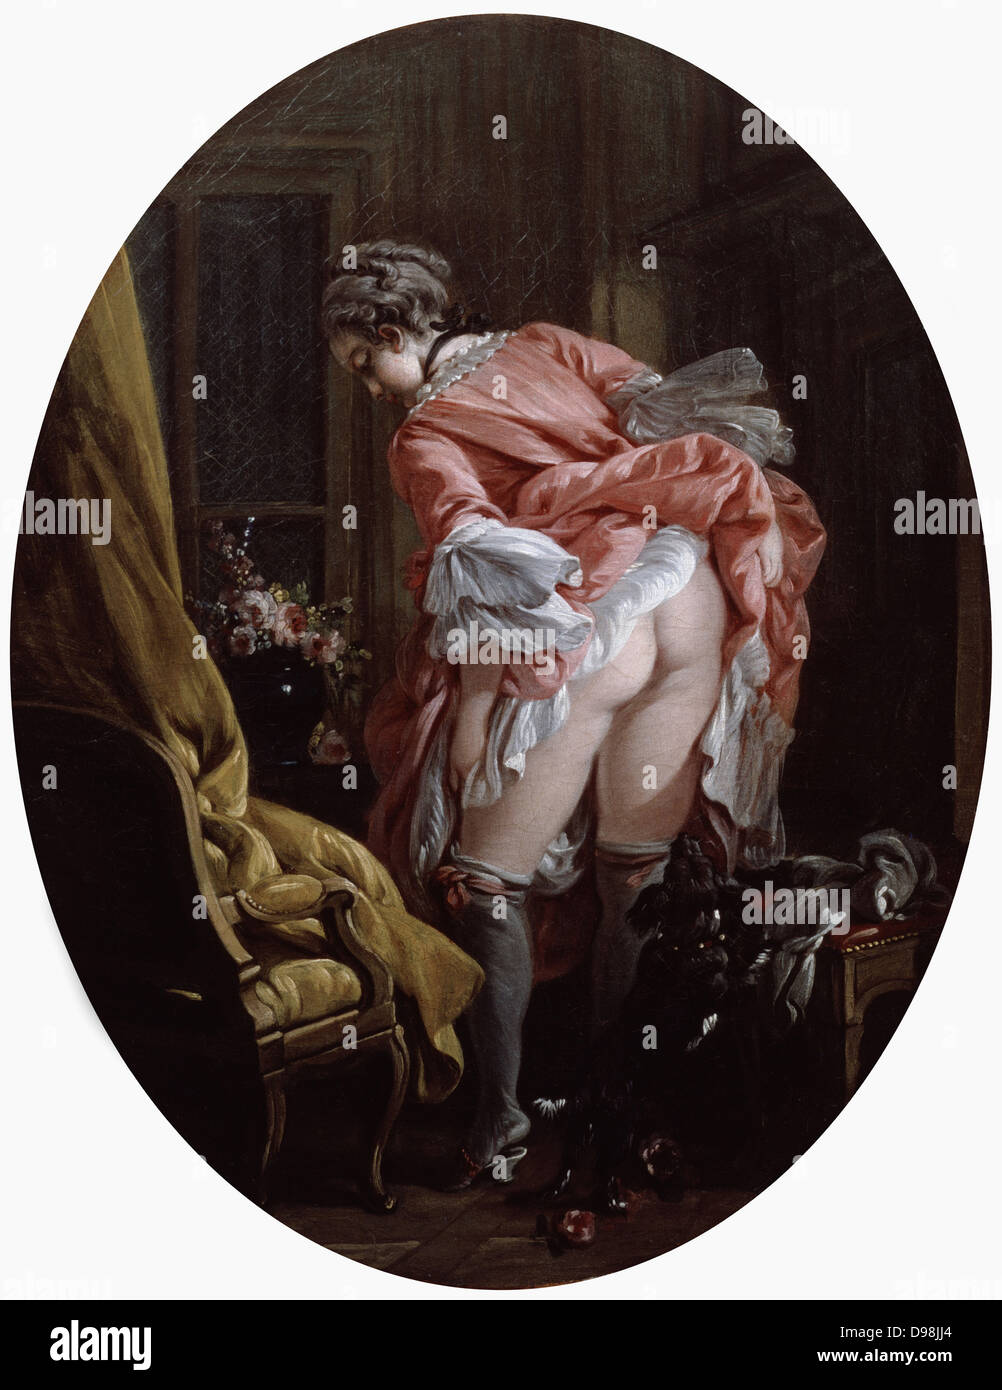 La Jupe relevee' (The Raised Skirt), 1742, oil on canvas. Francois Boucher (1703-1770) French Rococo painter - Stock Image